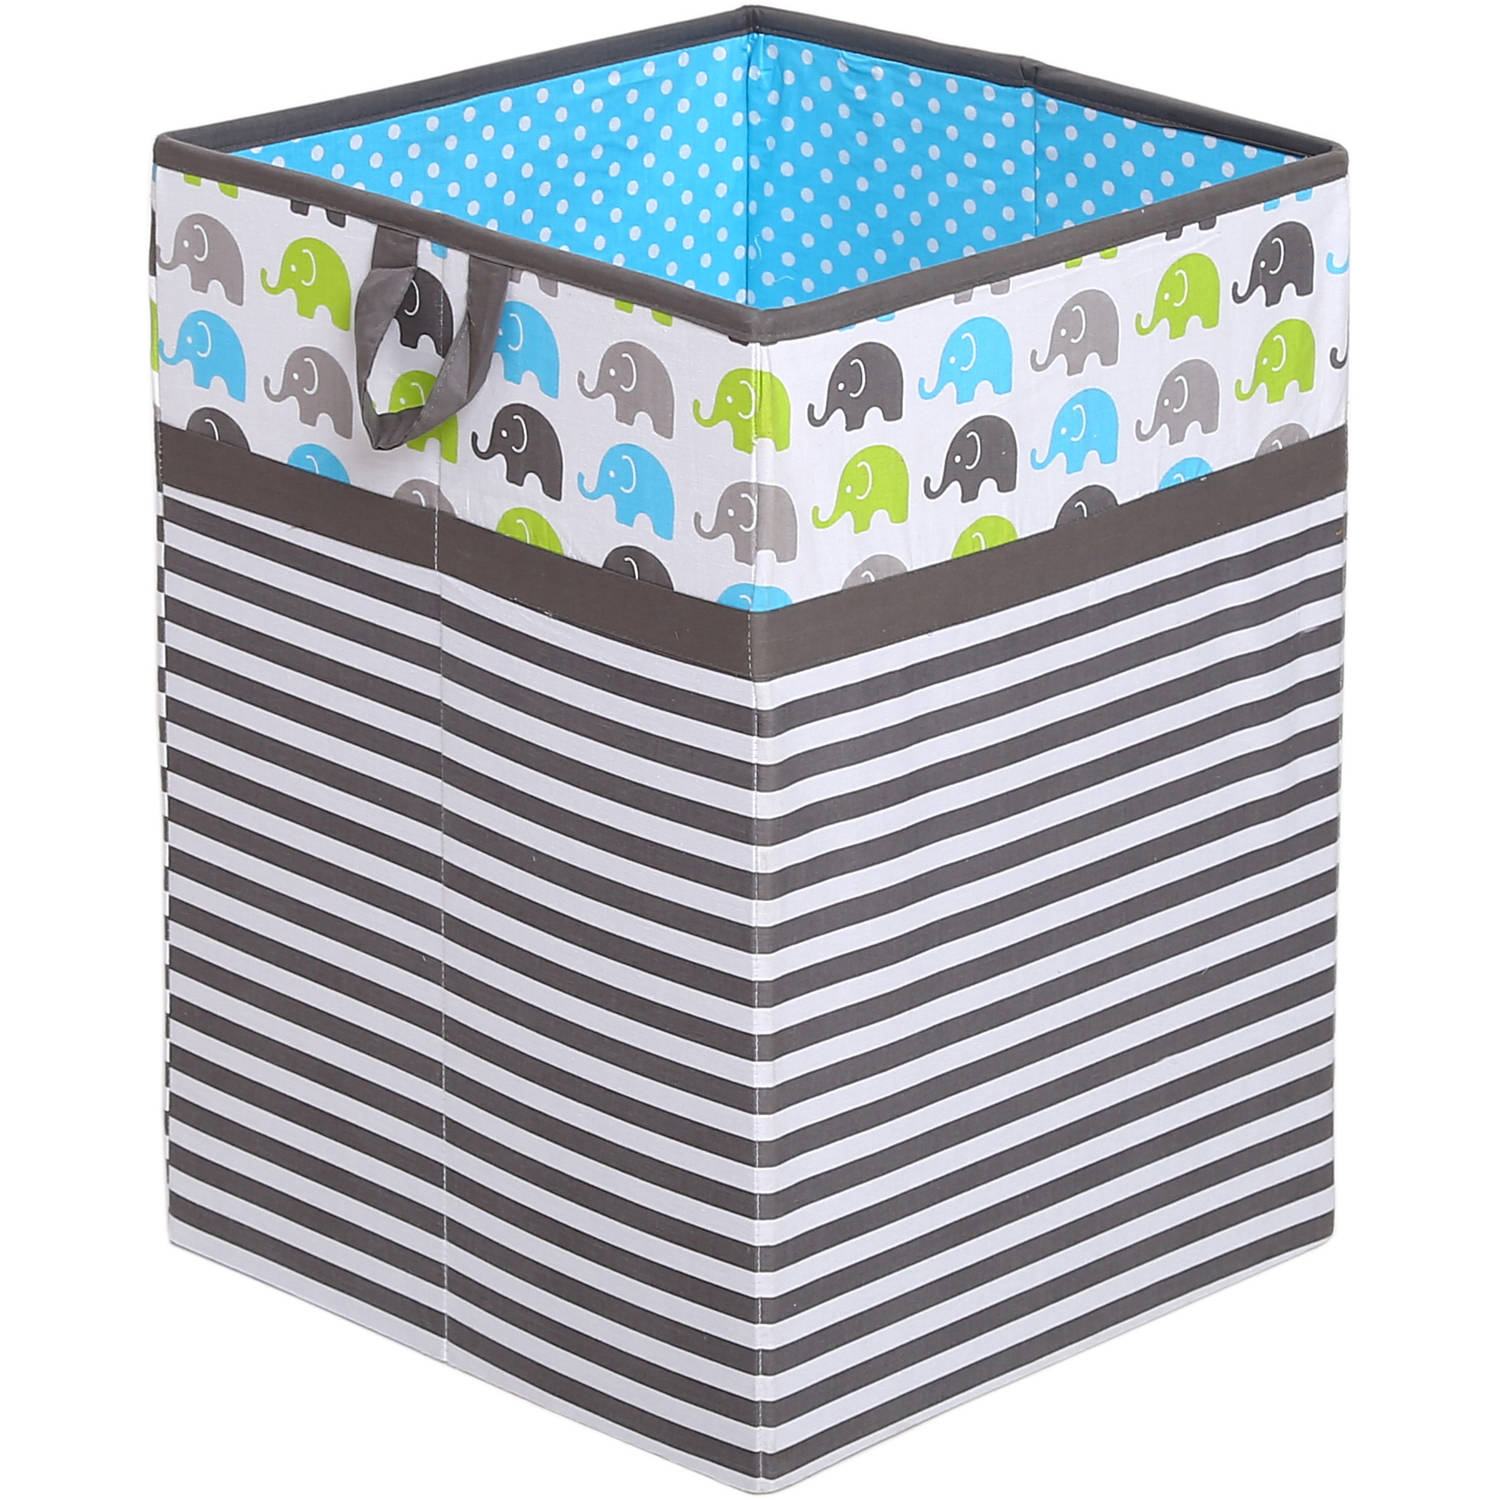 Bacati - Elephants Aqua/Lime/Gray Cotton Percale Fabric covered Storage Collapsible Hamper, 18 H x 13 W x 13 L inches